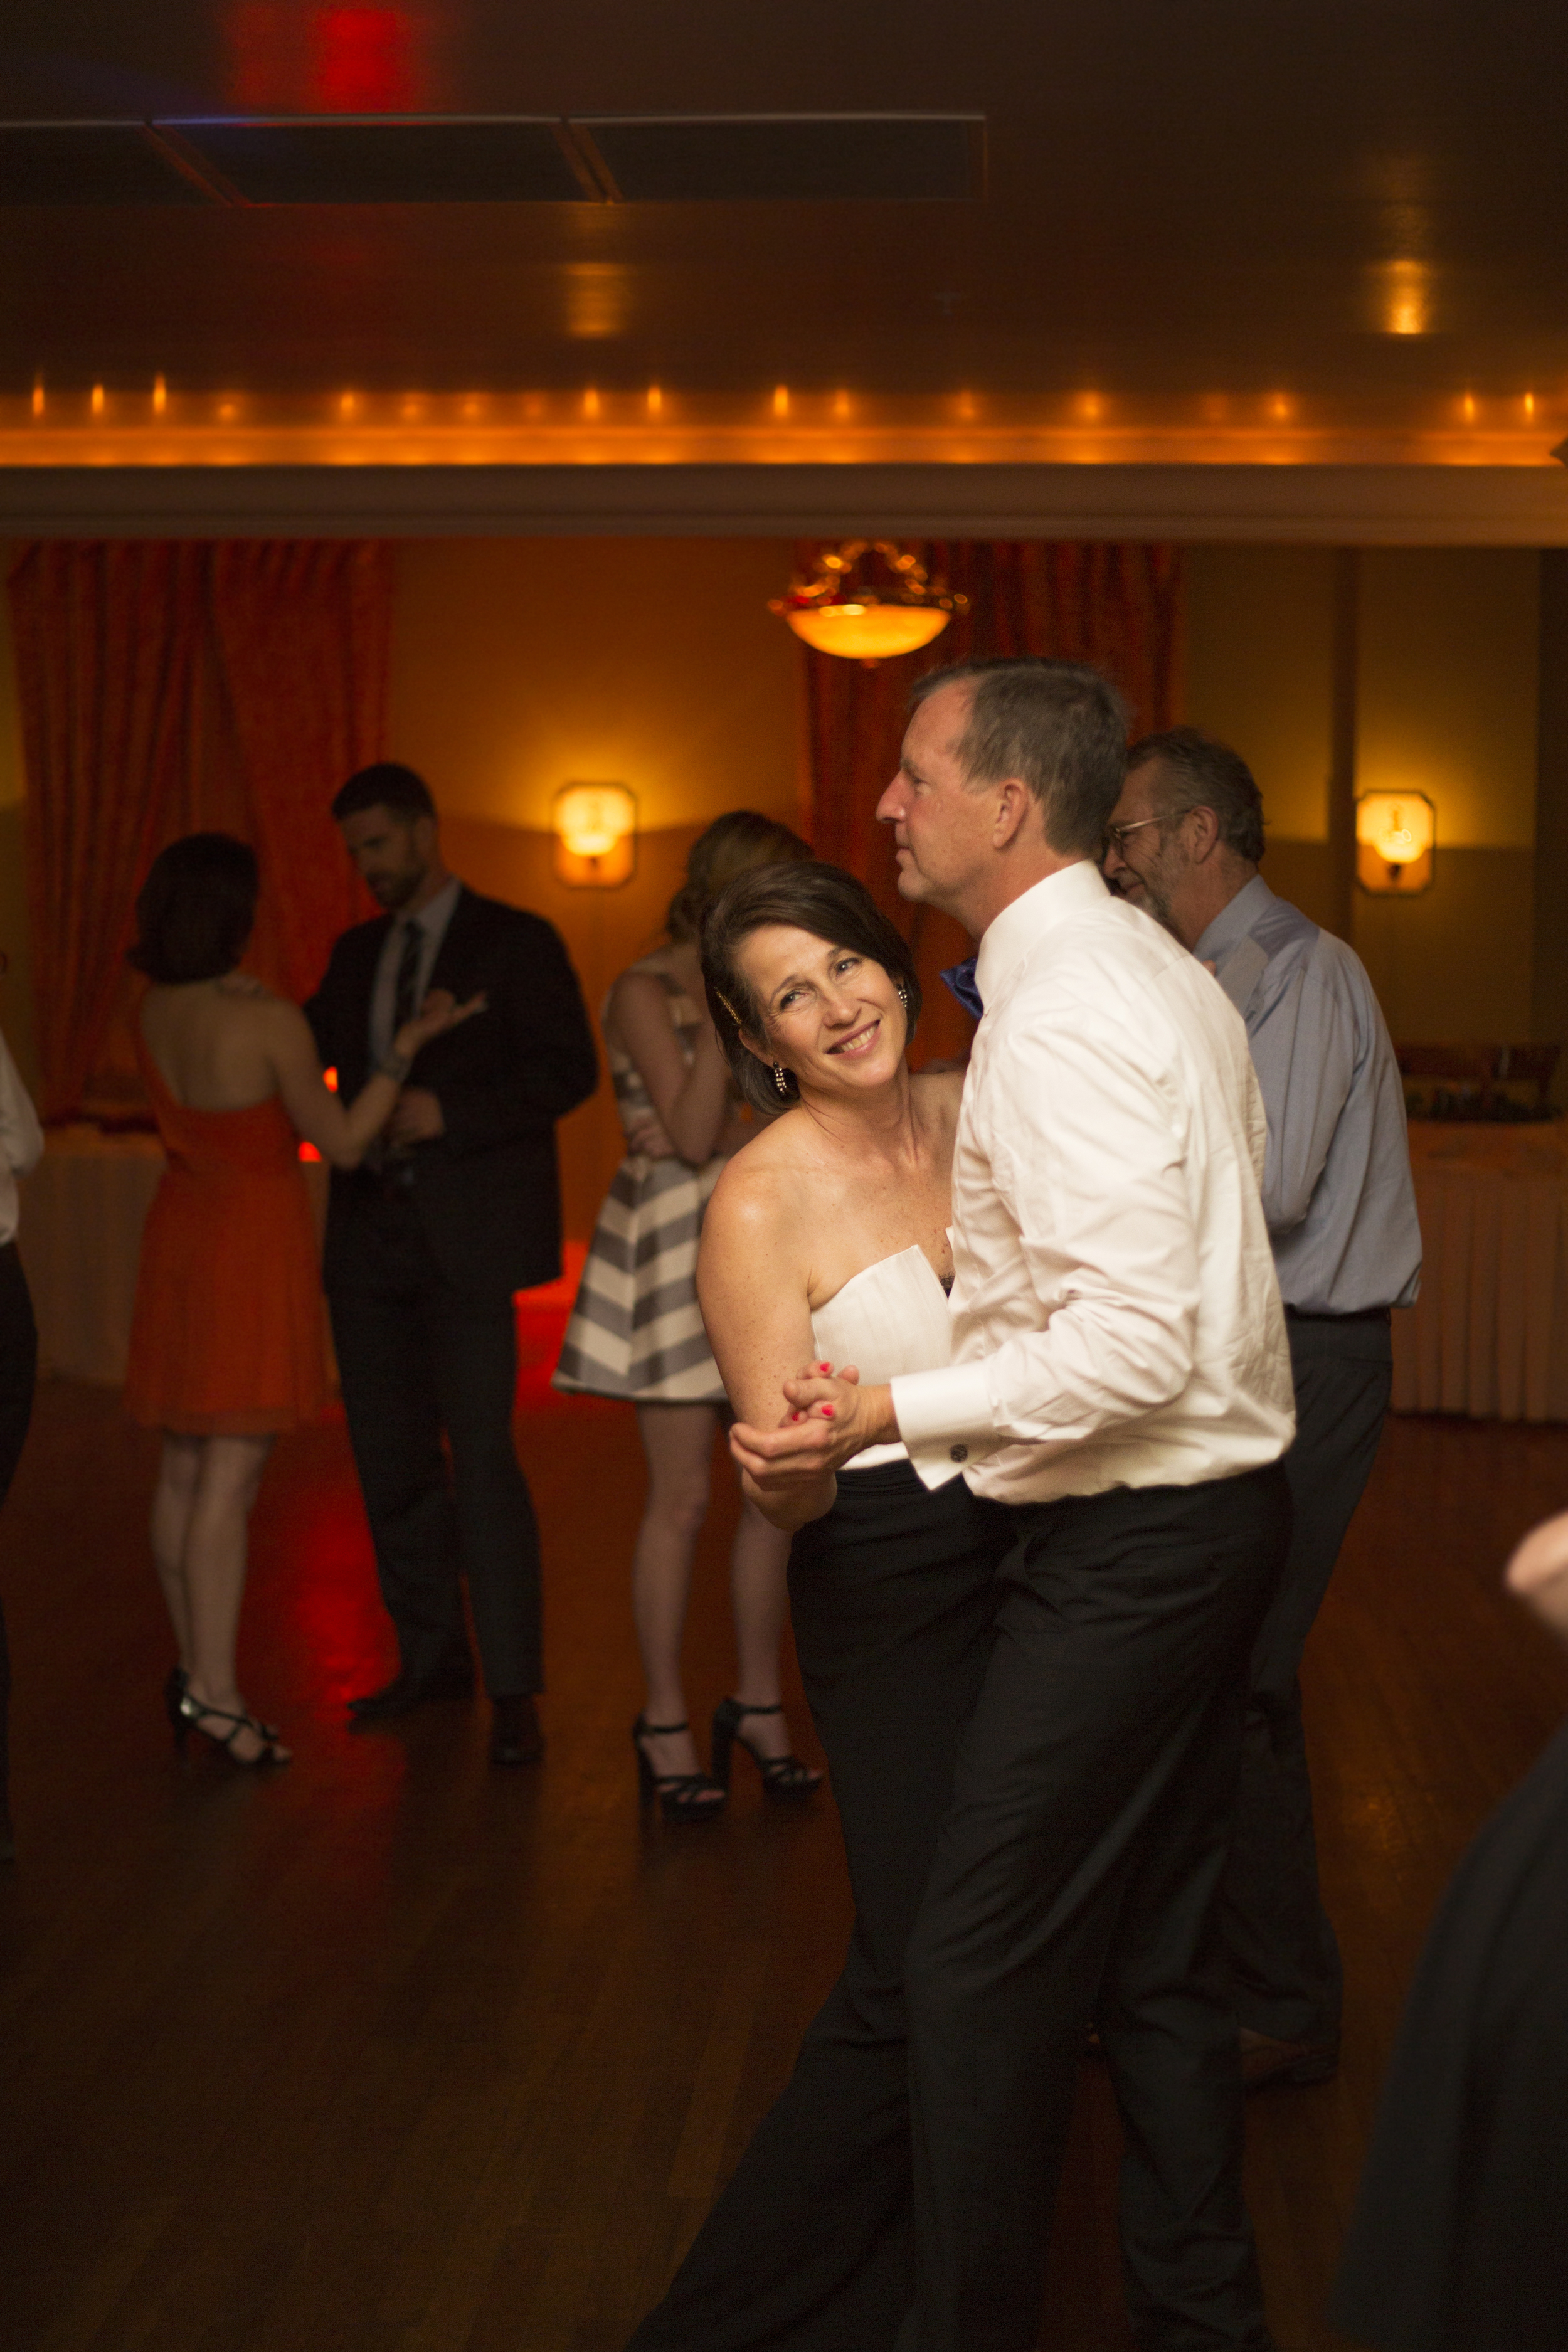 Emily and Eric - Lyceum Wedding Photography - Preview Photos - Emily & Company Photography (18).jpg